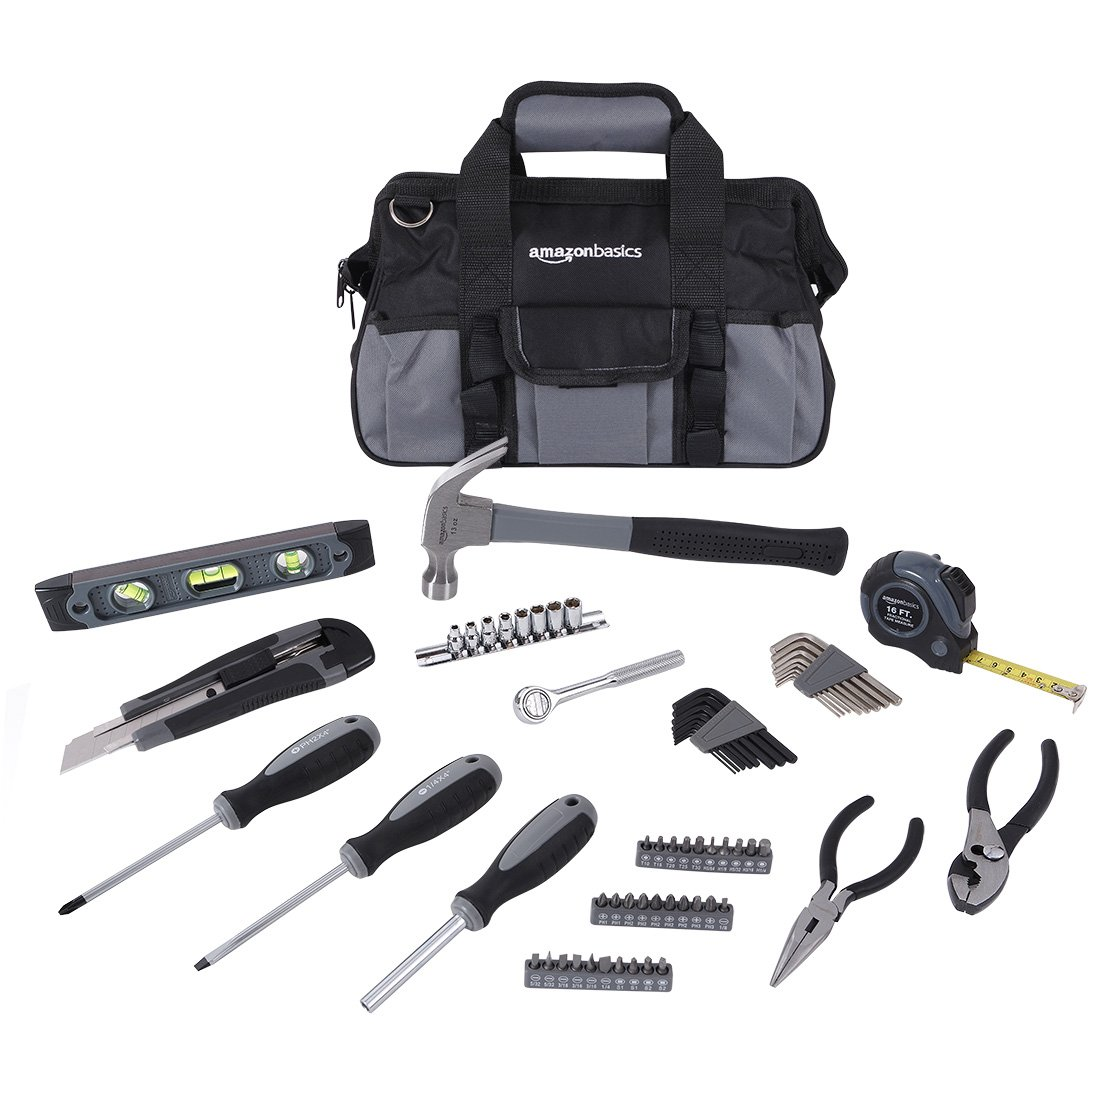 AmazonBasics 65-Piece Home Repair Kit, Basic Tool Set for Home/Office/Dorm/Apartment with Tool Bag by AmazonBasics